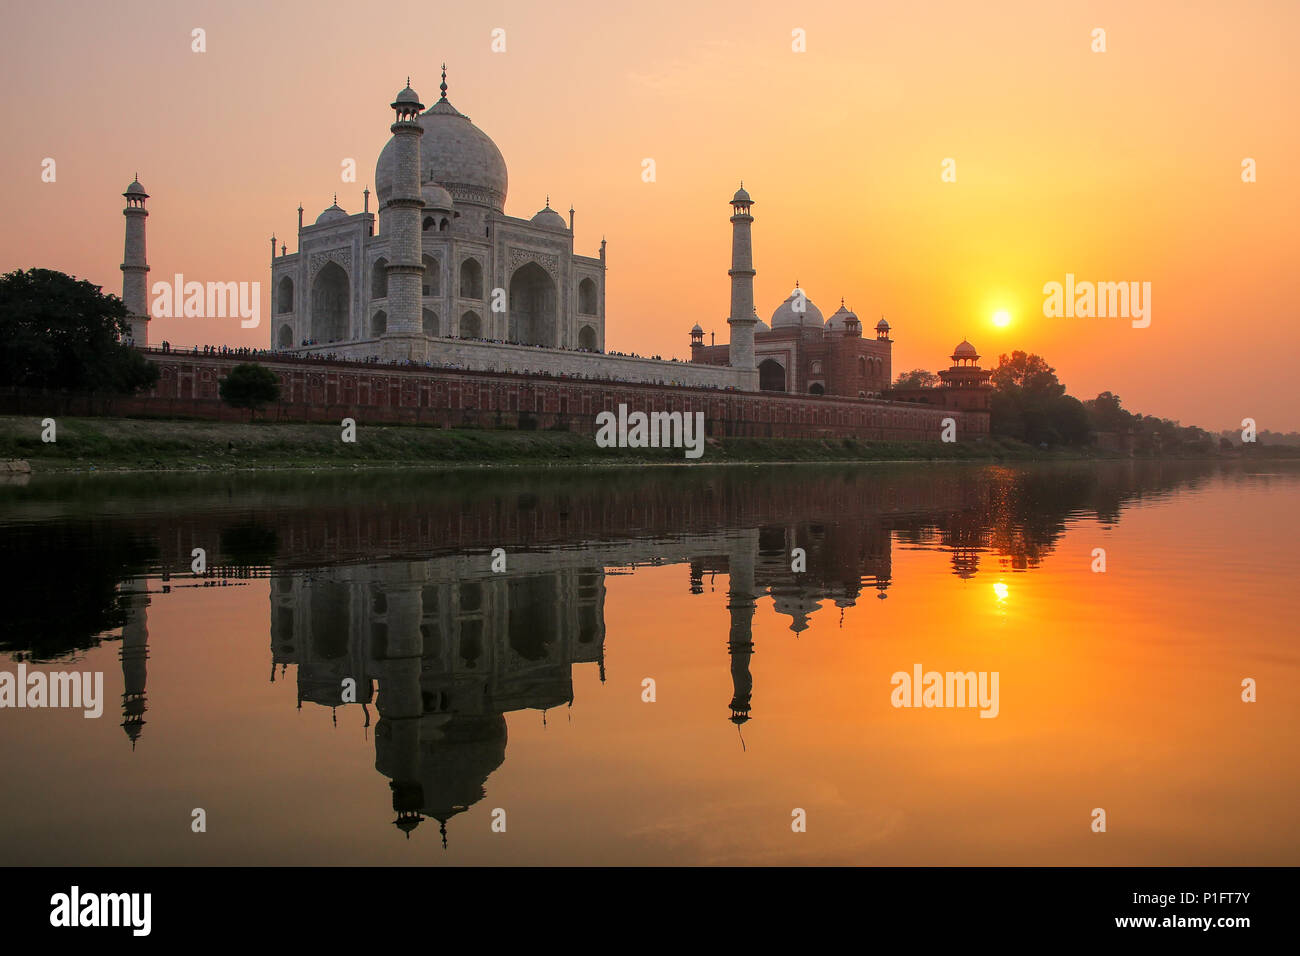 Taj Mahal reflected in Yamuna river at sunset in Agra, India. It was commissioned in 1632 by the Mughal emperor Shah Jahan to house the tomb of his fa - Stock Image